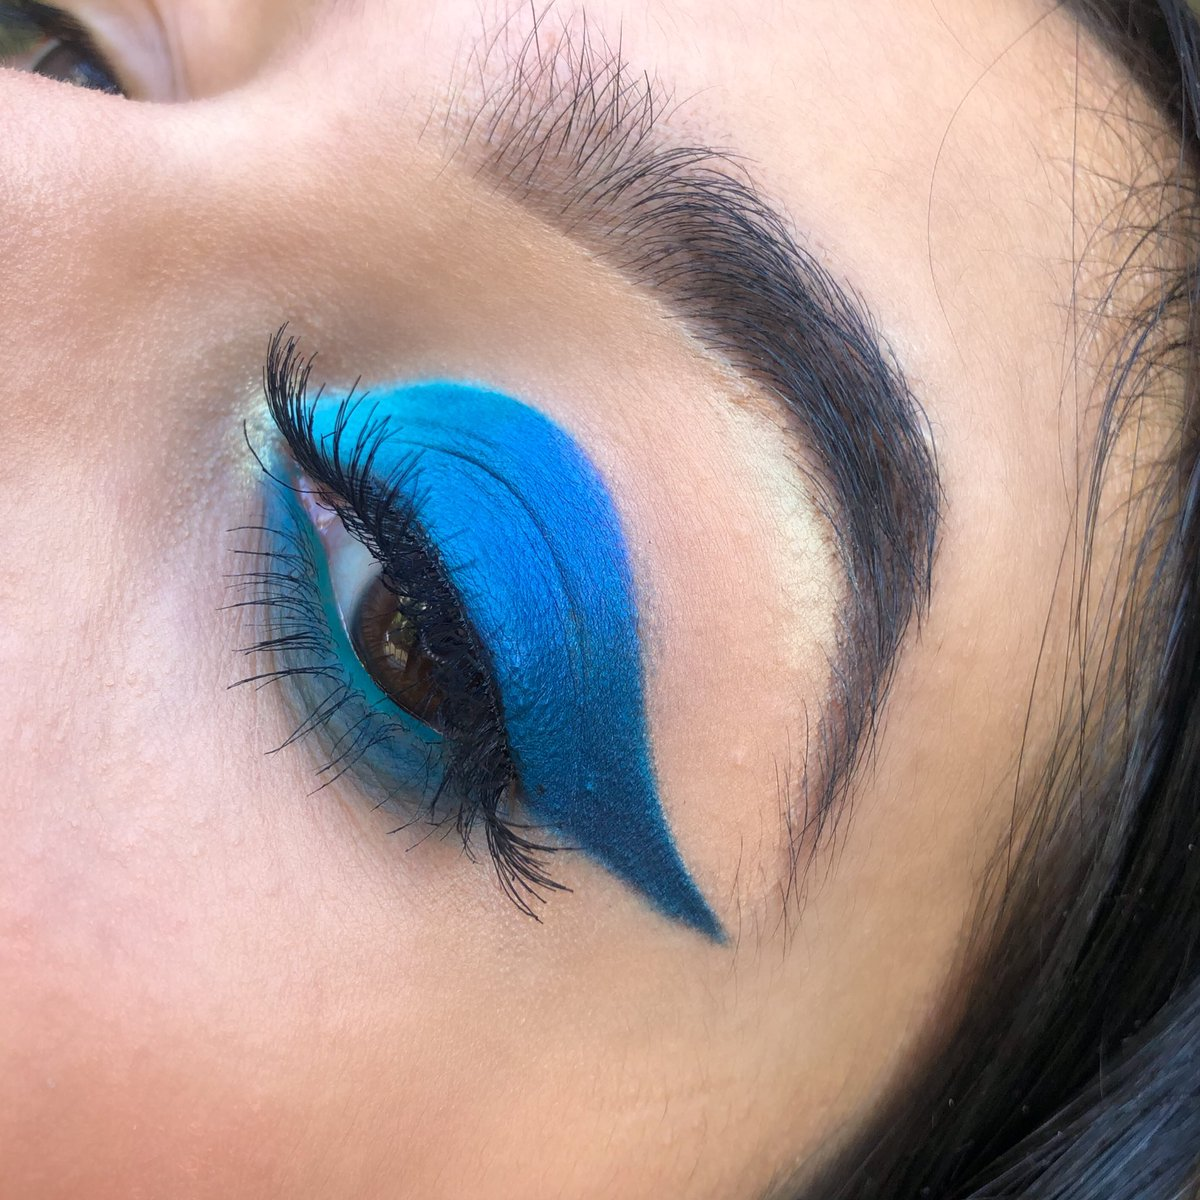 blue vibes  follow @mkpbymoon on instagram for more PRODUCTS@MorpheBrushes 35B artistry palette  @bperfectcosm carnival xl pro palette @beautybay   white eye liner @Sephora   #morphebabe #generationbeautybay #bperfect #makeup #bluemakeup #makeupenthusiastpic.twitter.com/rWN75aw0W7